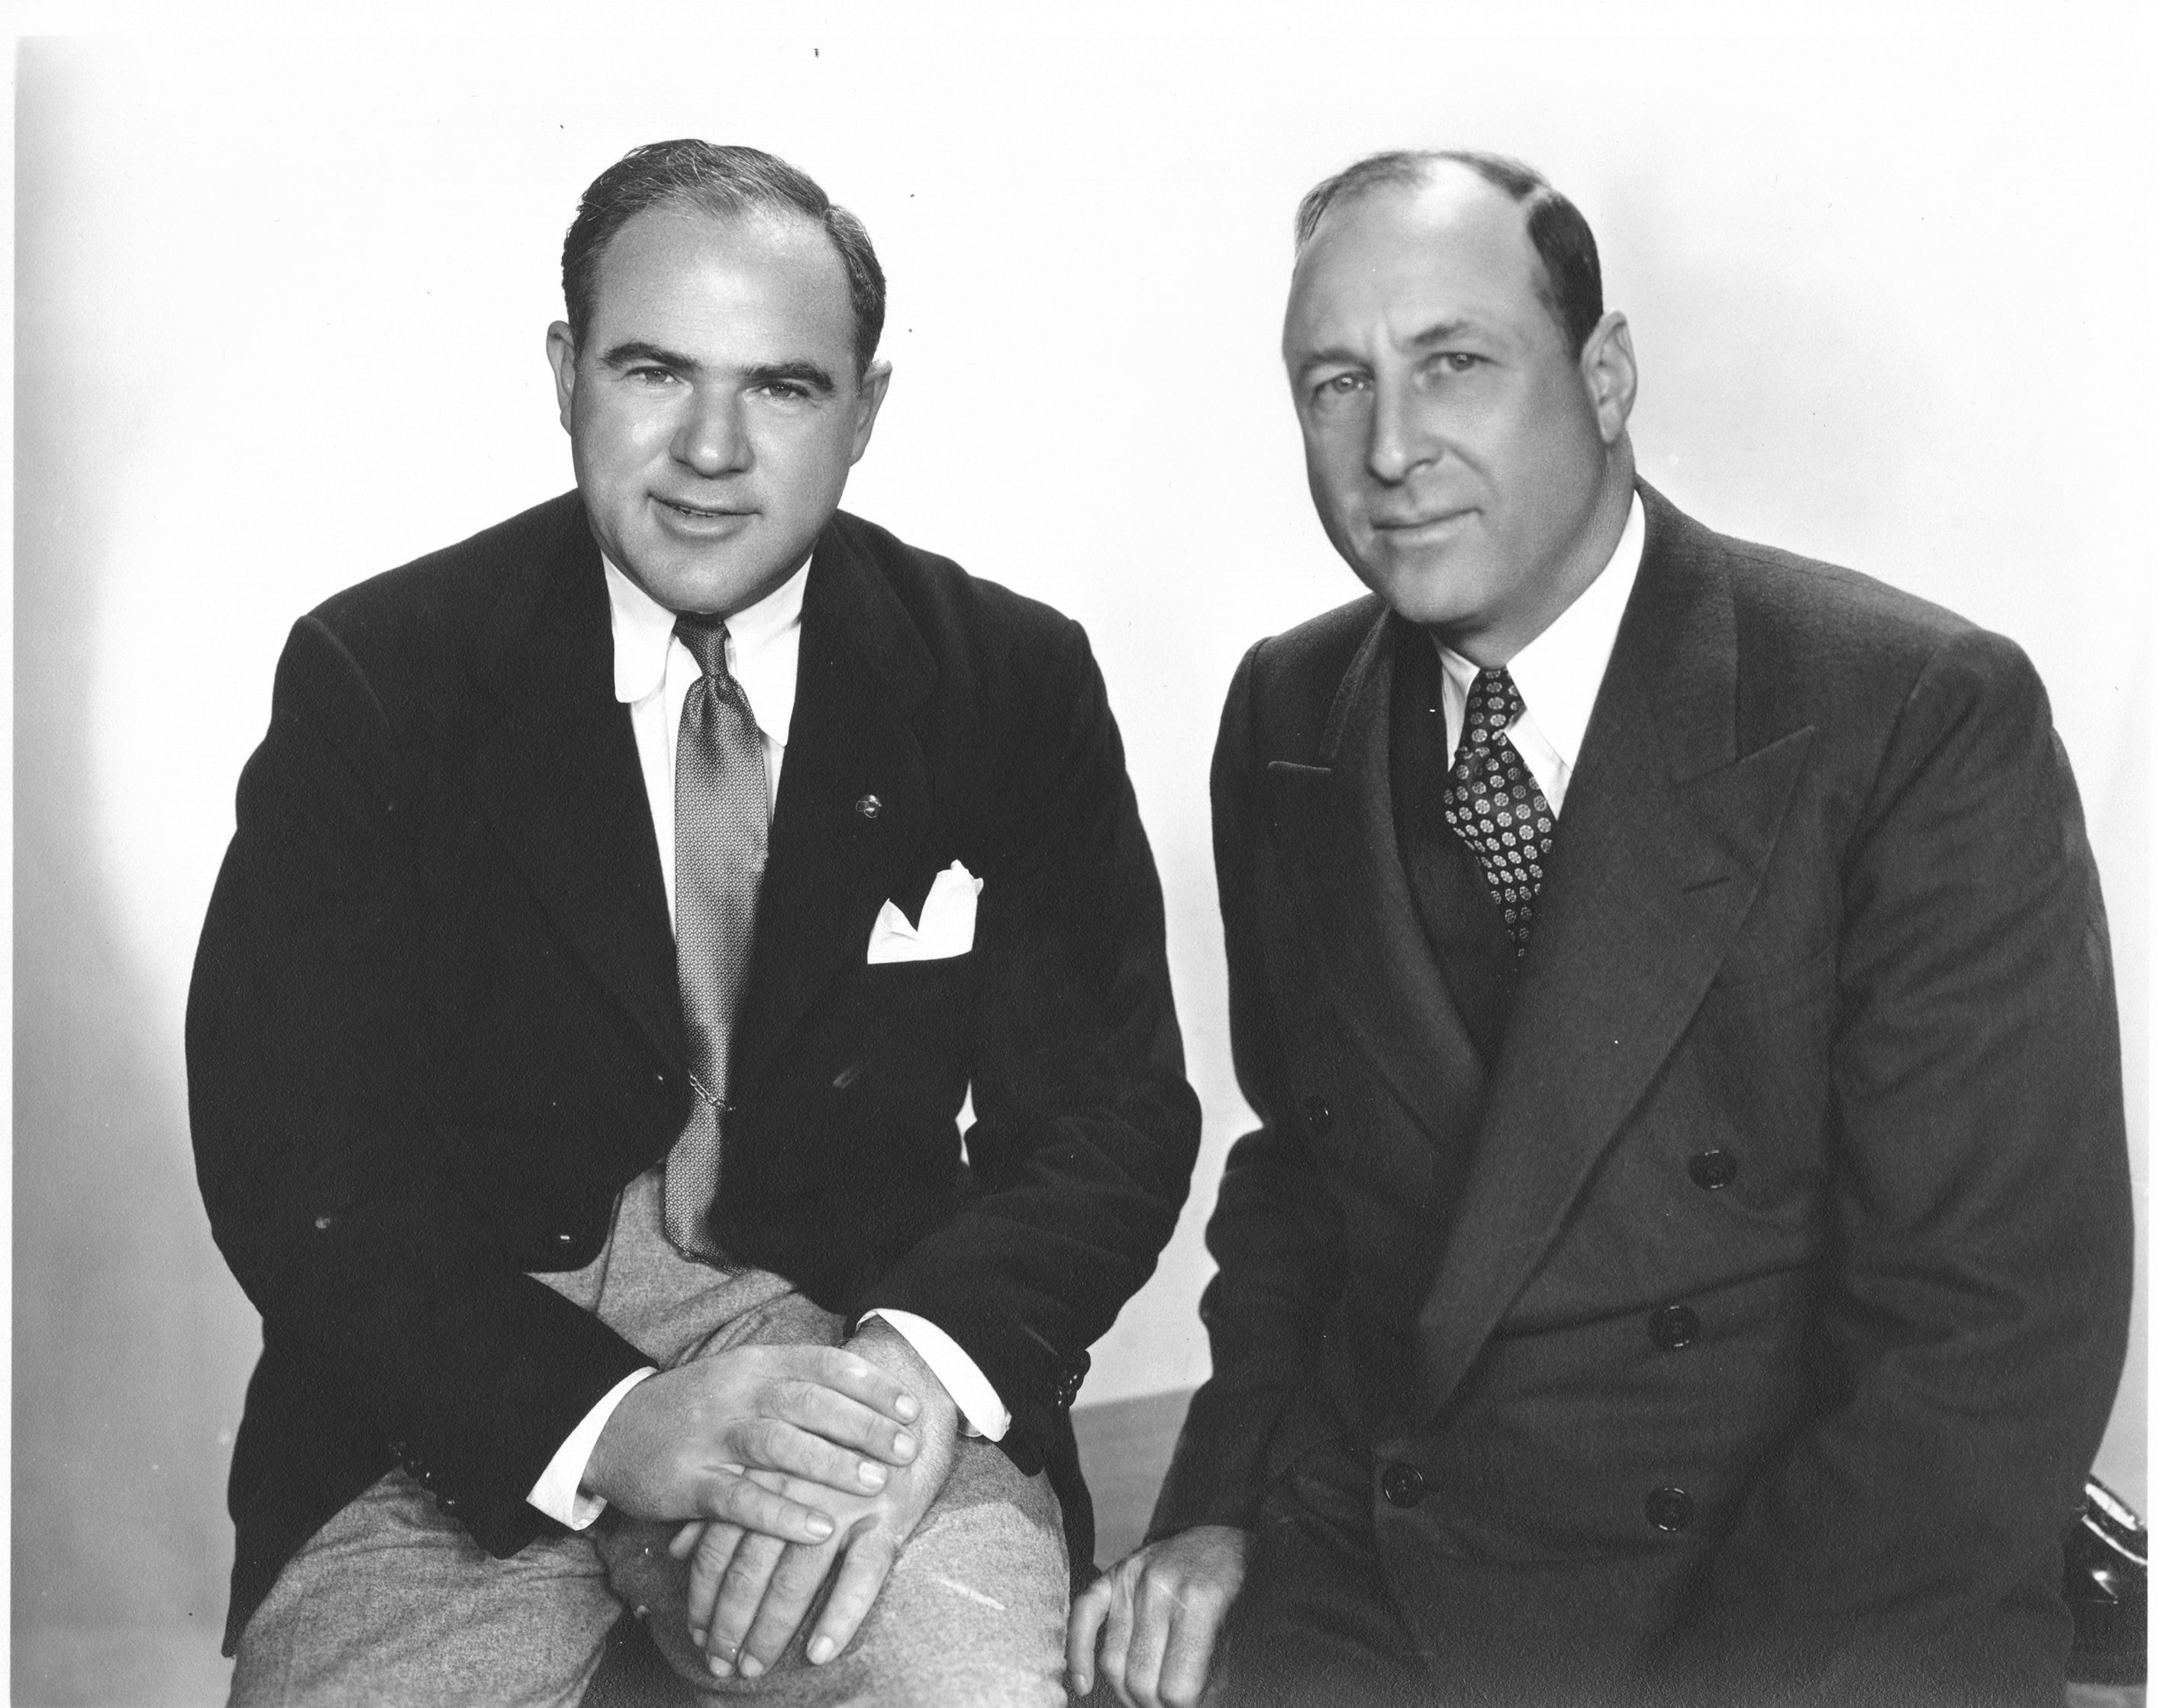 Hal Roach and Dr. Charles H. Strub, co-founders of the Los Angeles Turf Club which formed to build the first racetrack in California, Santa Anita Park (Santa Anita Photo)